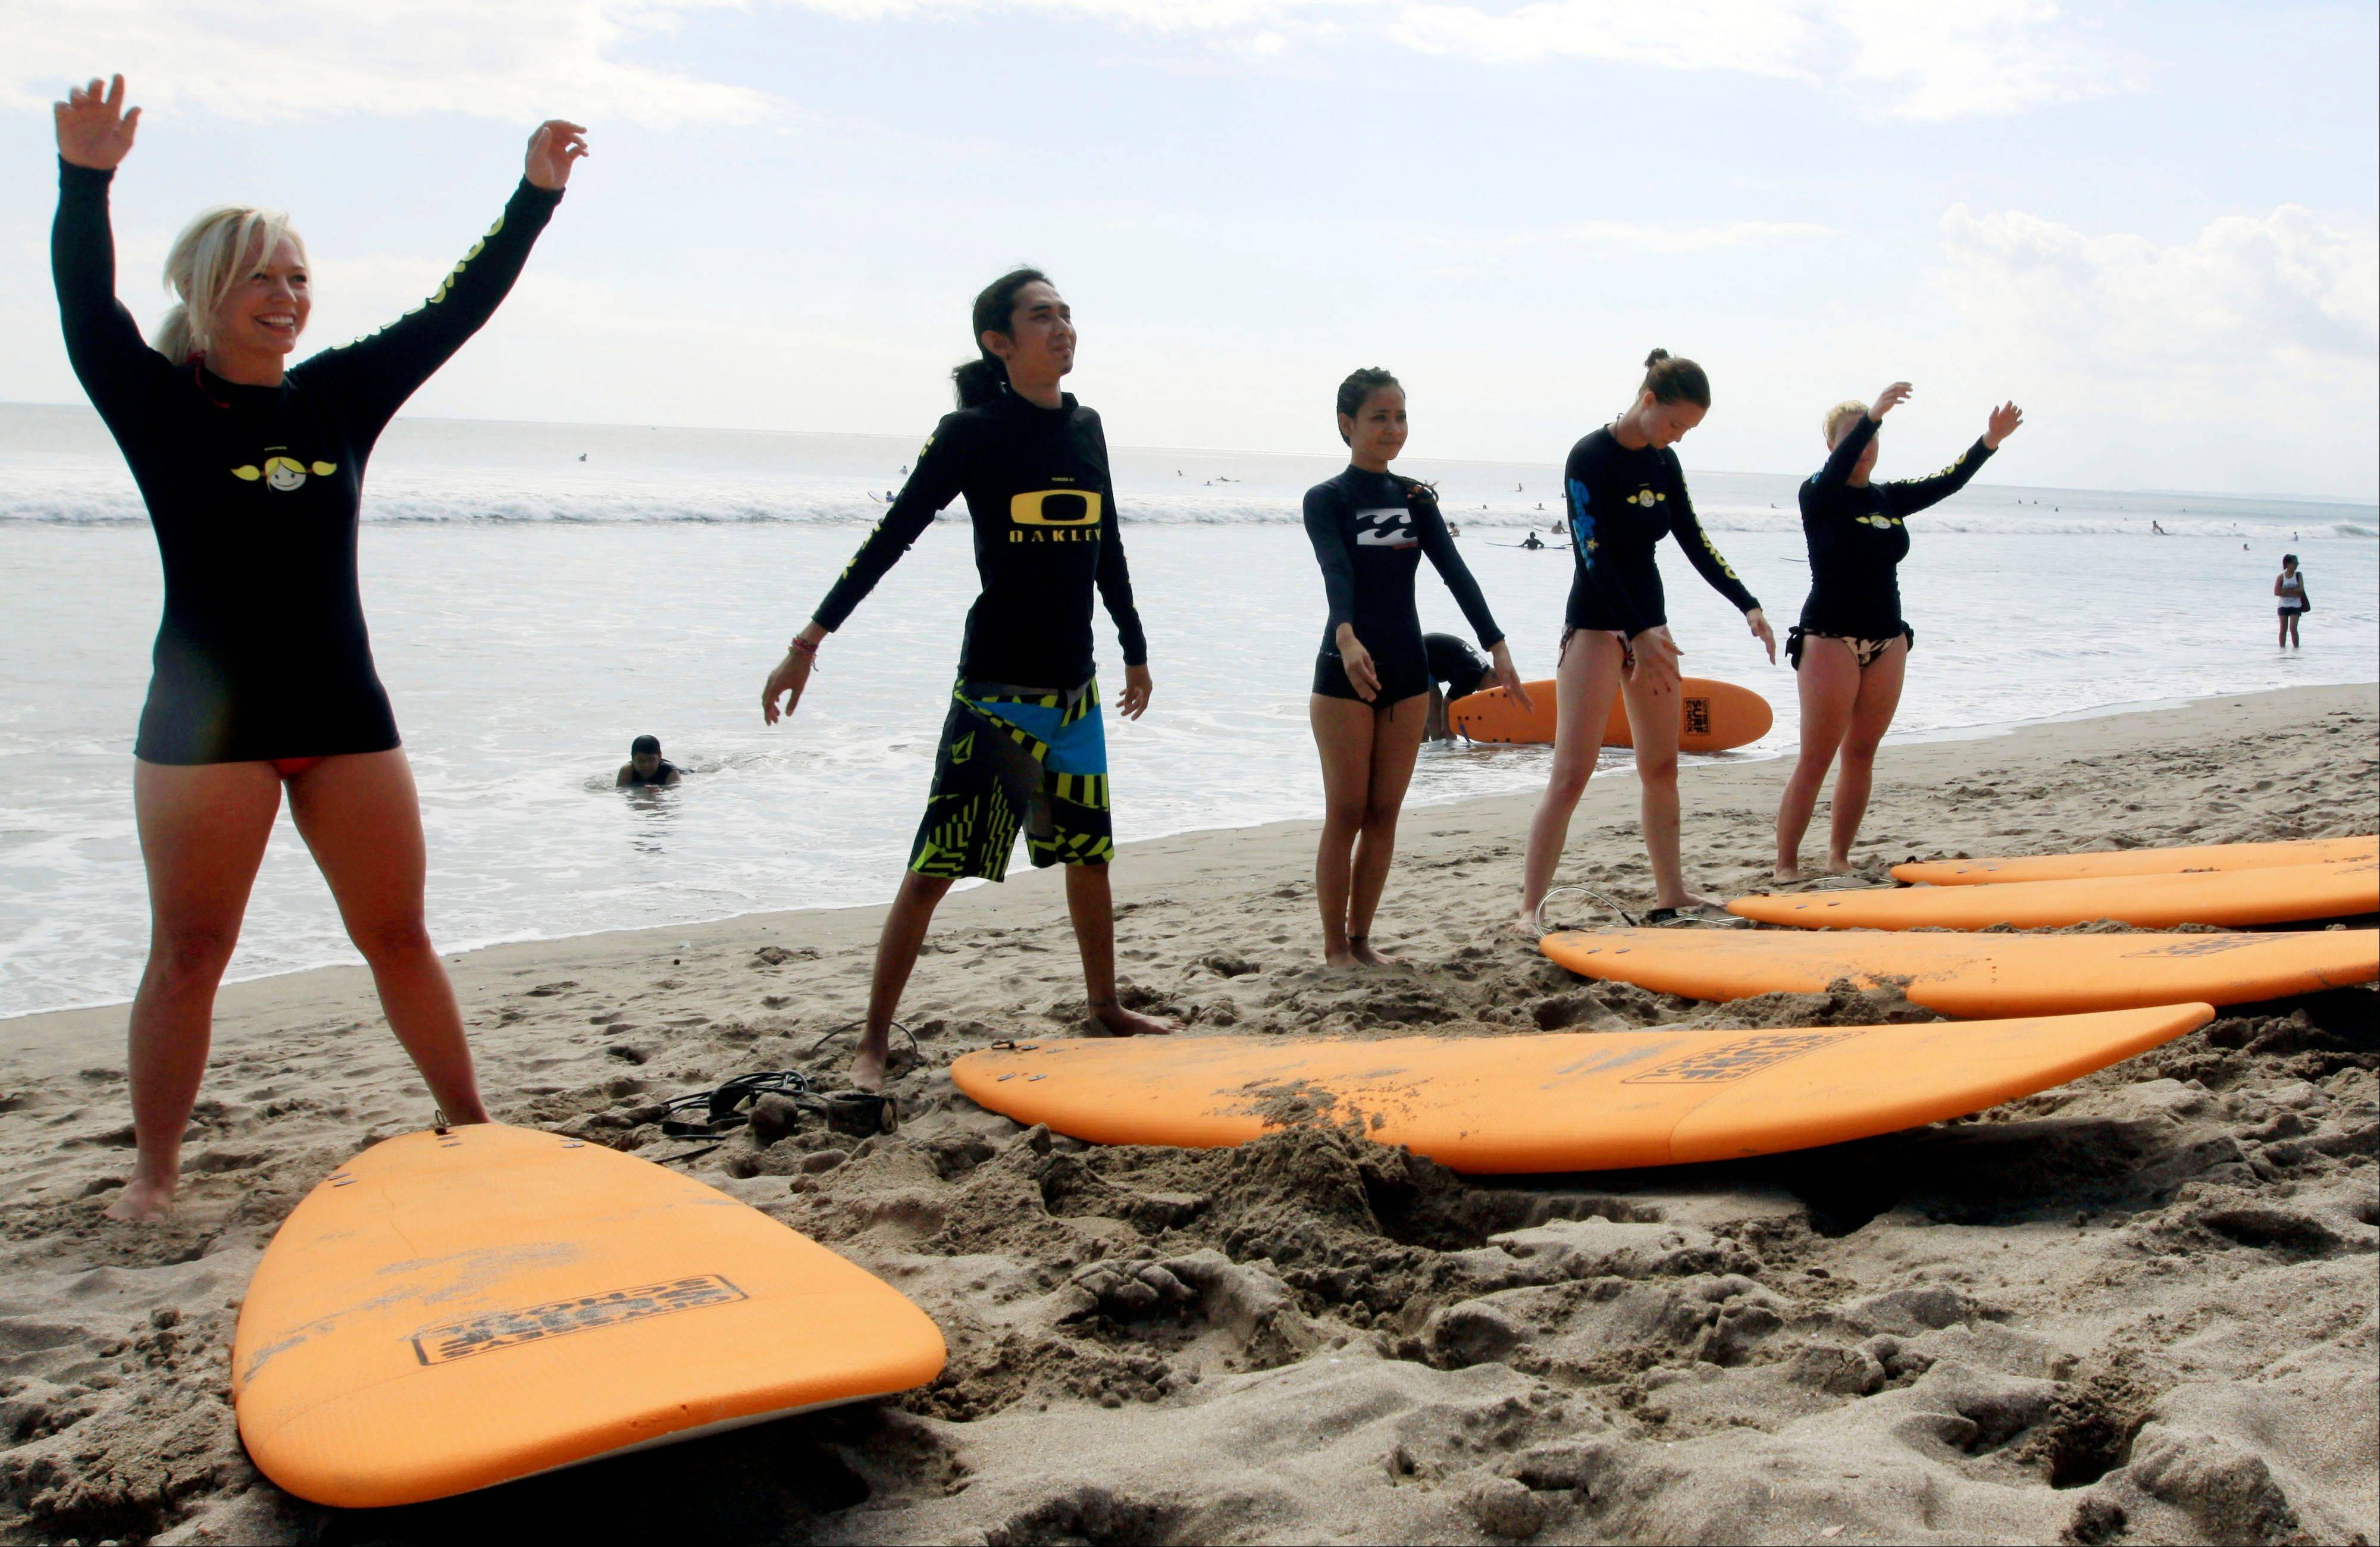 Tourists take surfing lessons on Kuta beach.